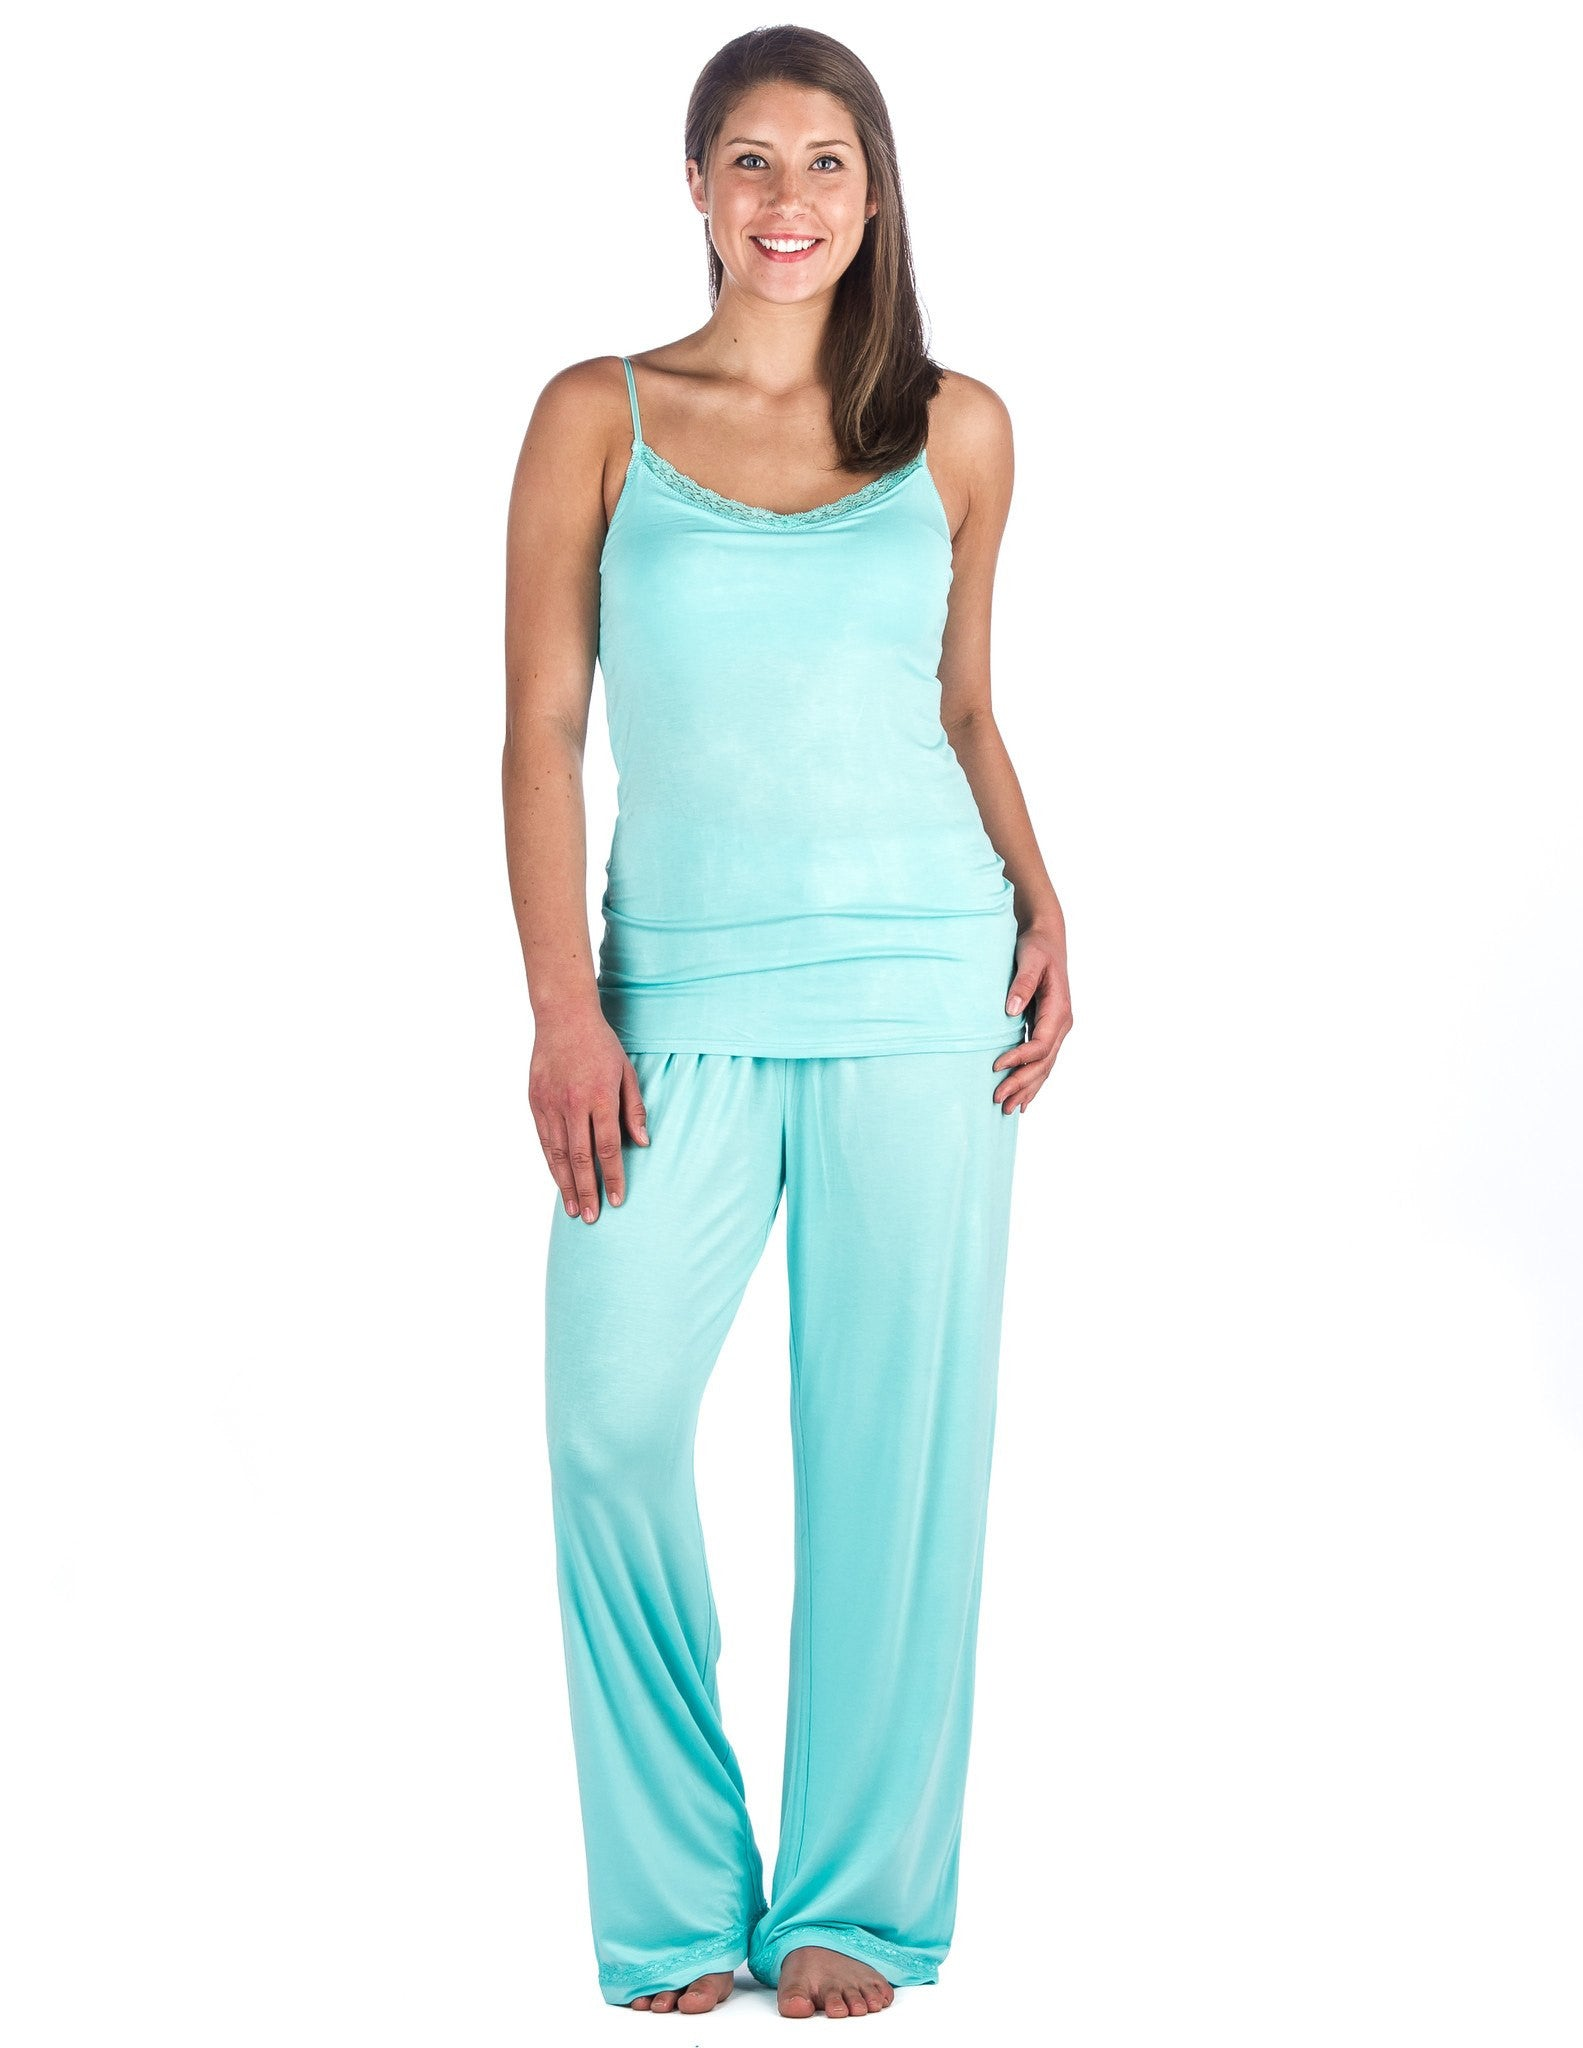 Women's Cool Knit Camisole Lounge Set